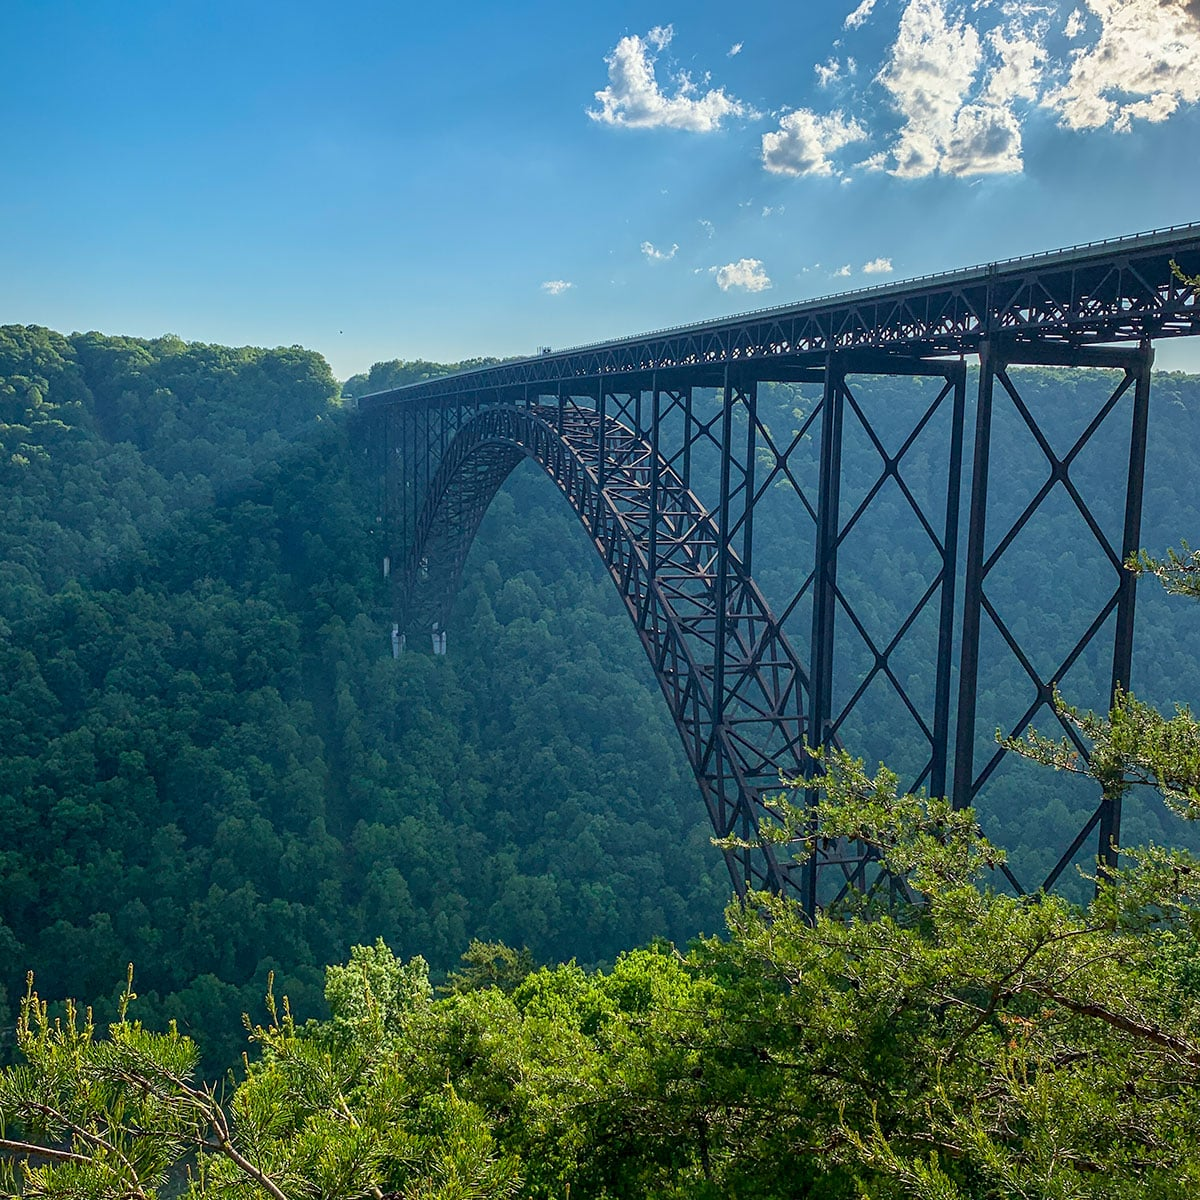 Definitive Guide to the New River Gorge: New River Gorge Bridge